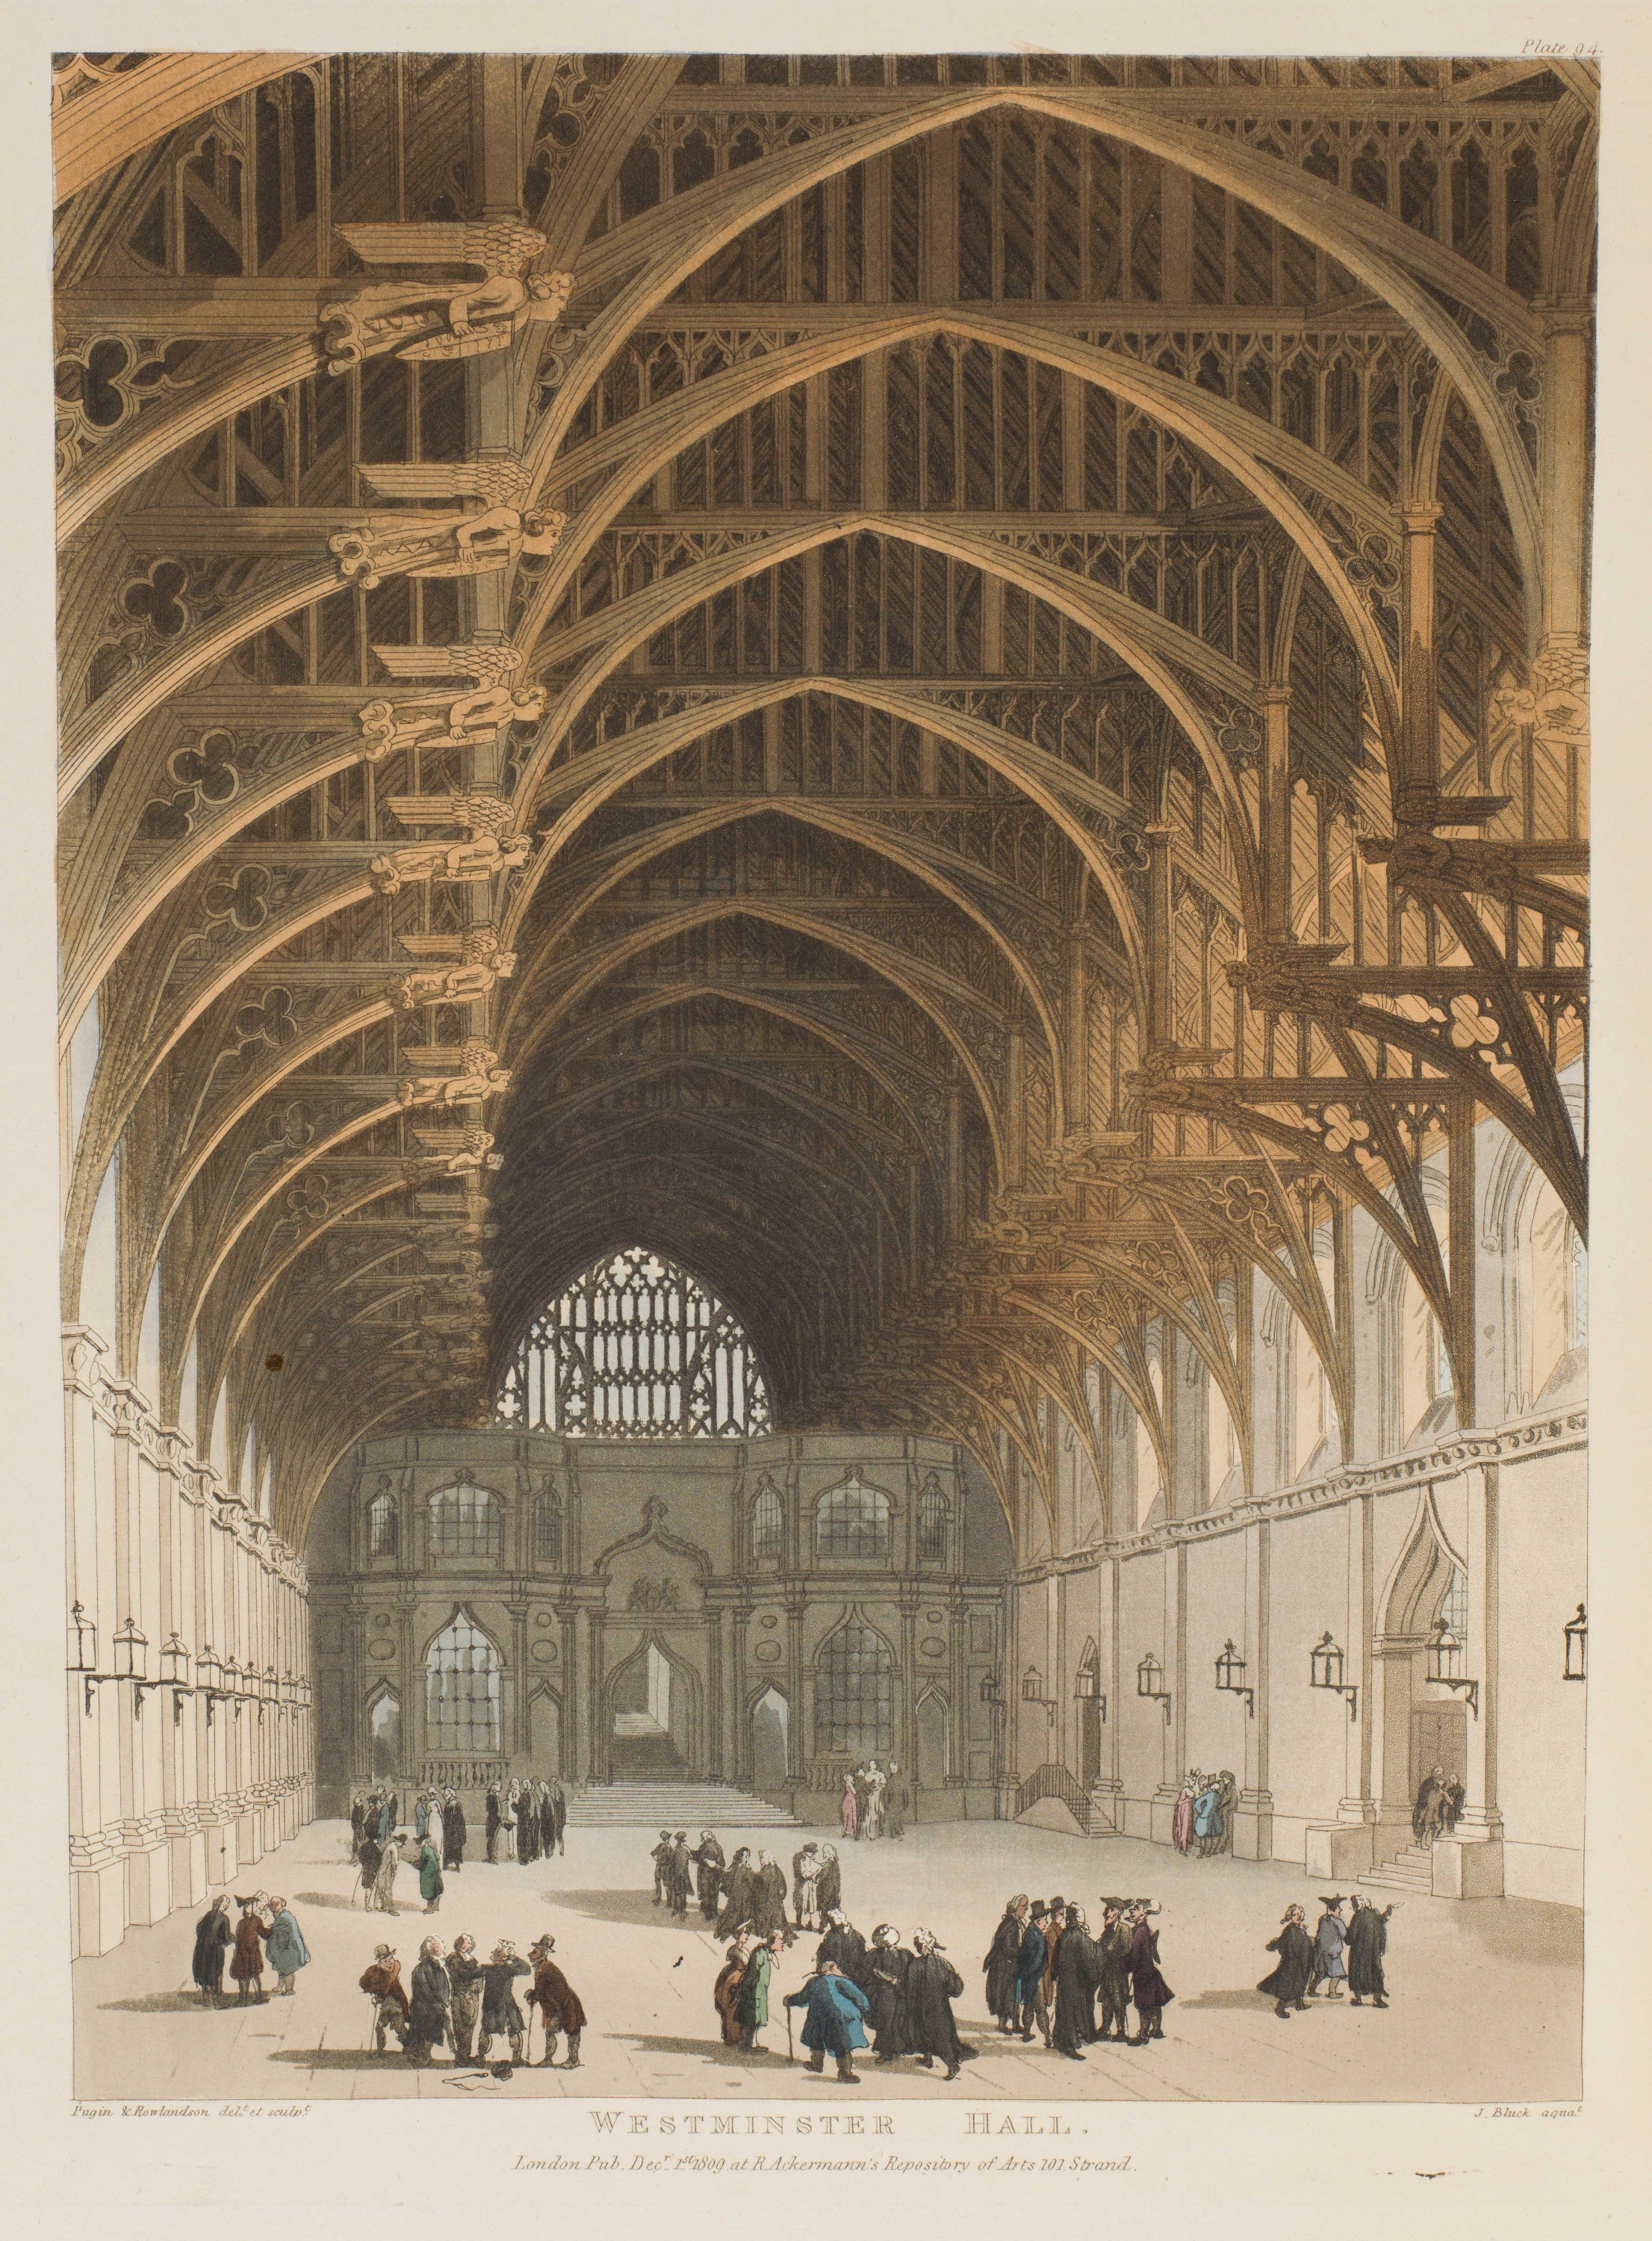 094 - Westminster Hall